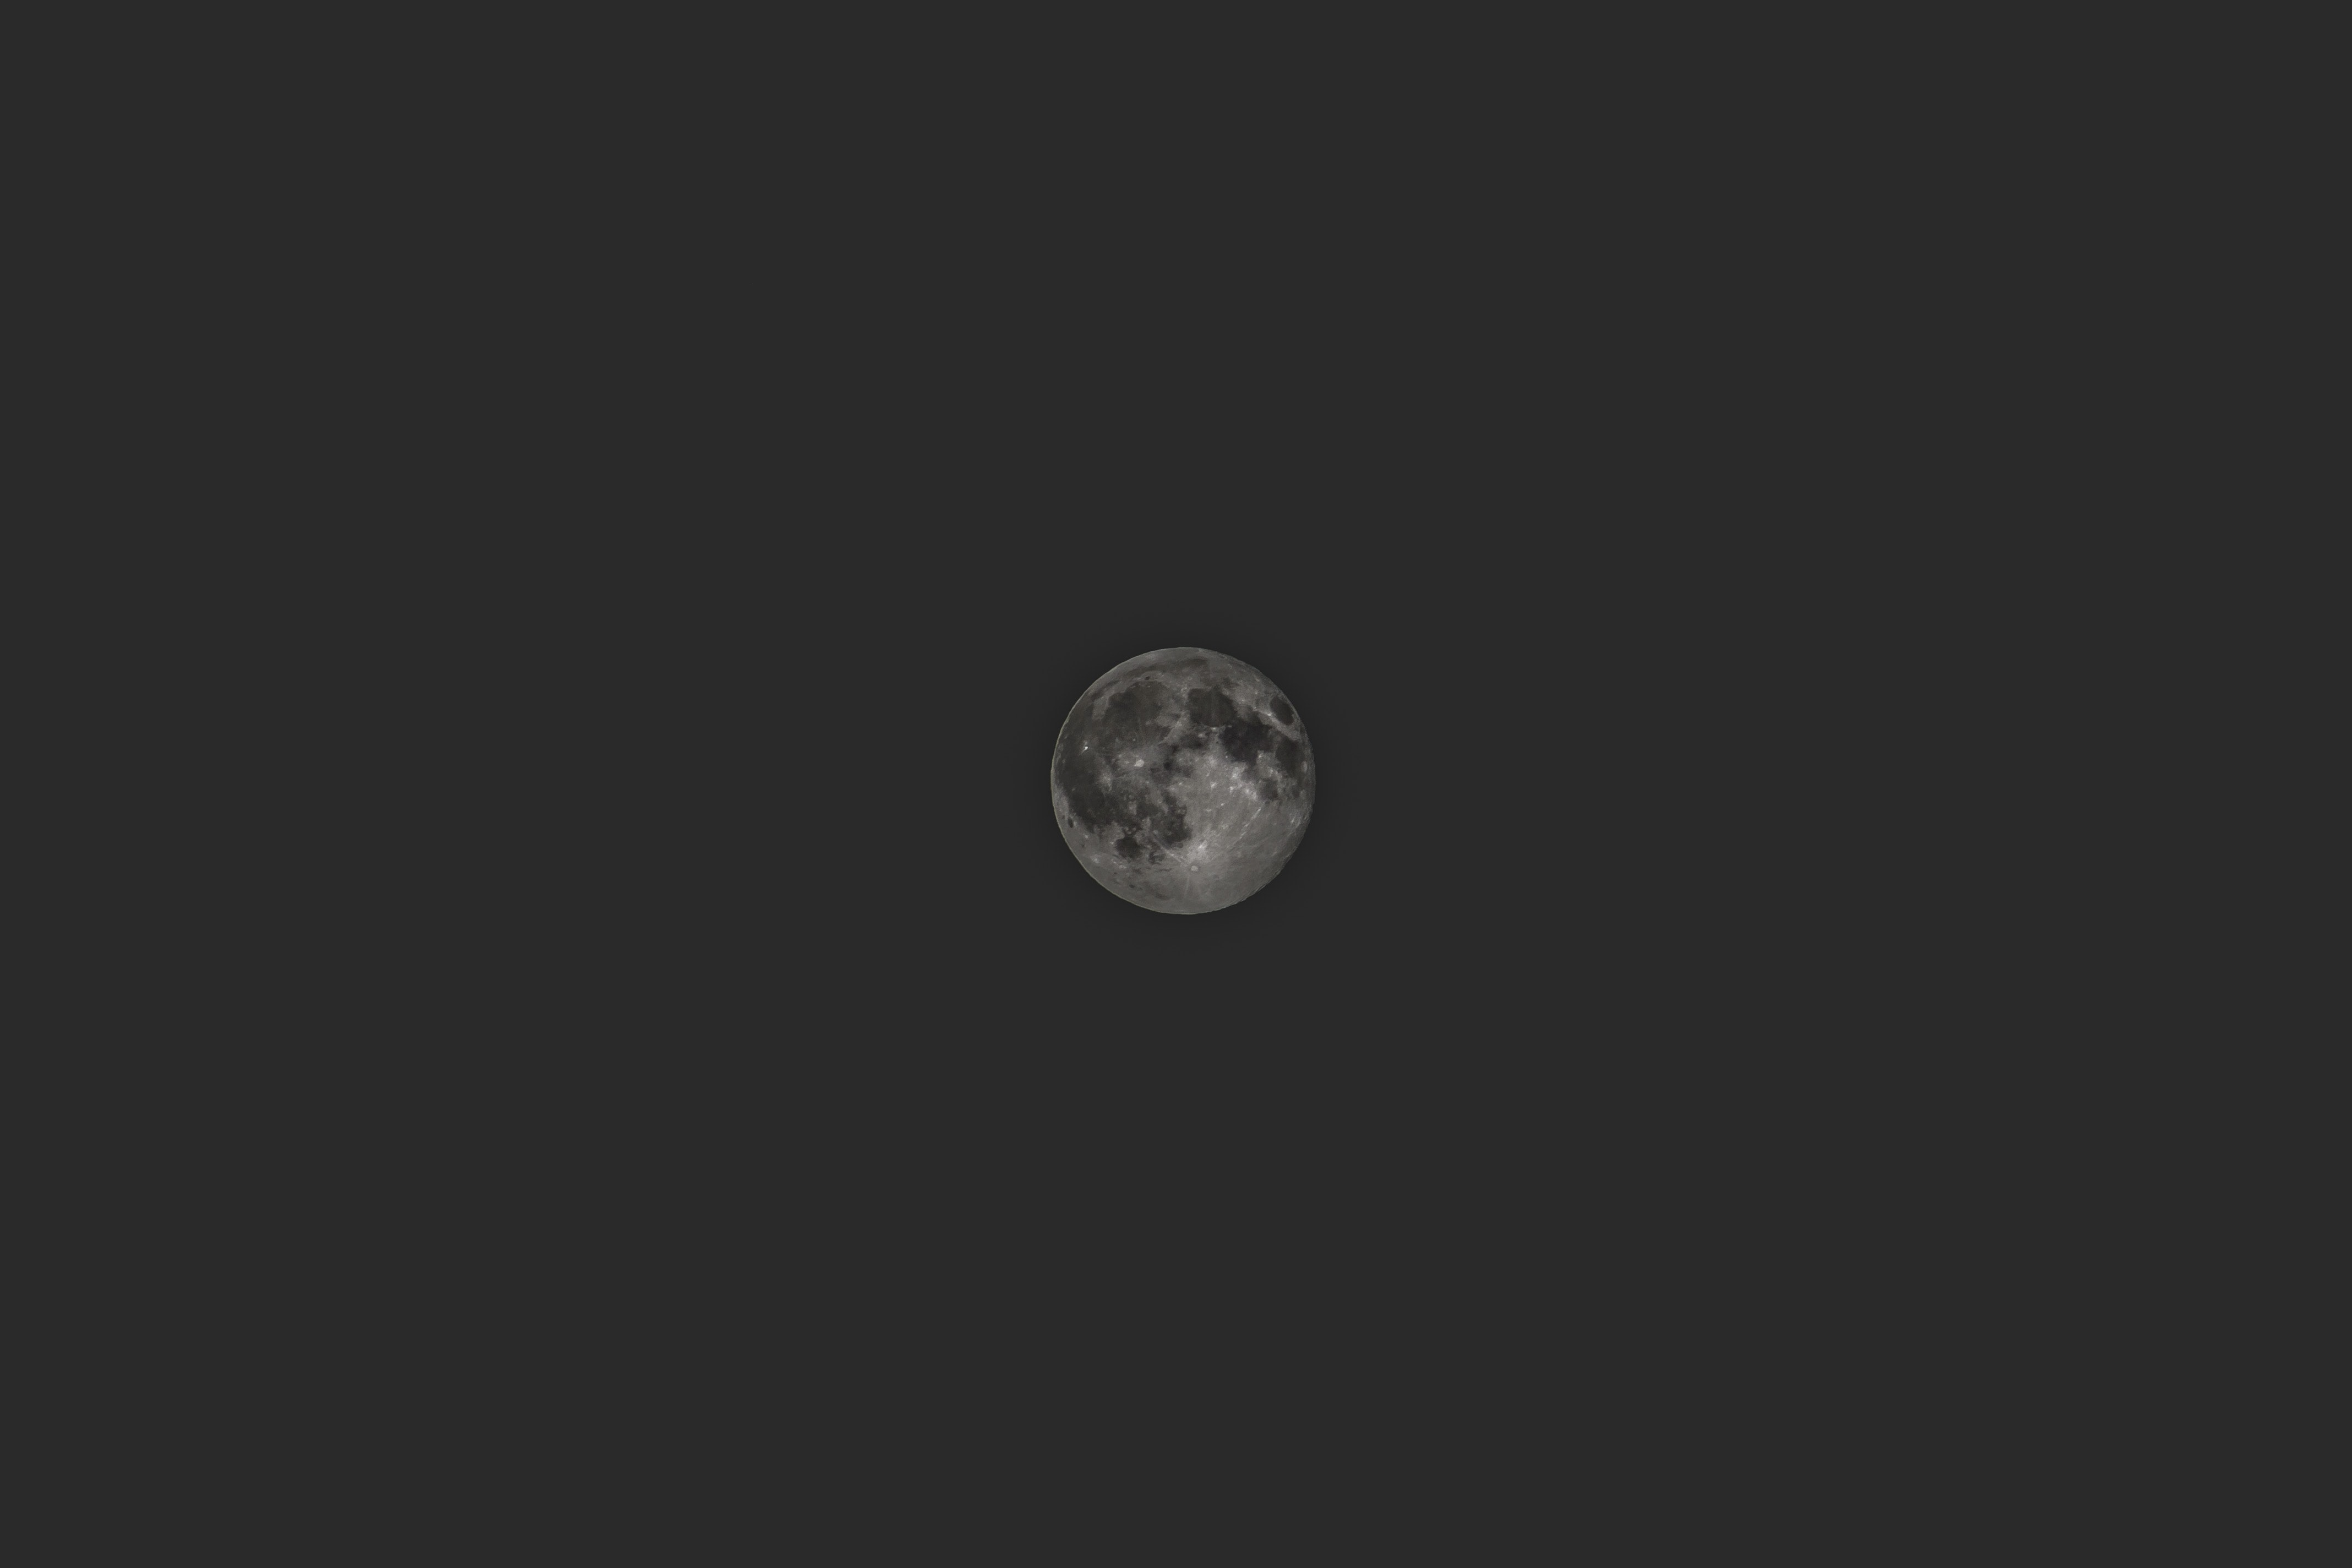 The full moon with visible dark spots as seen in Cluj-Napoca.